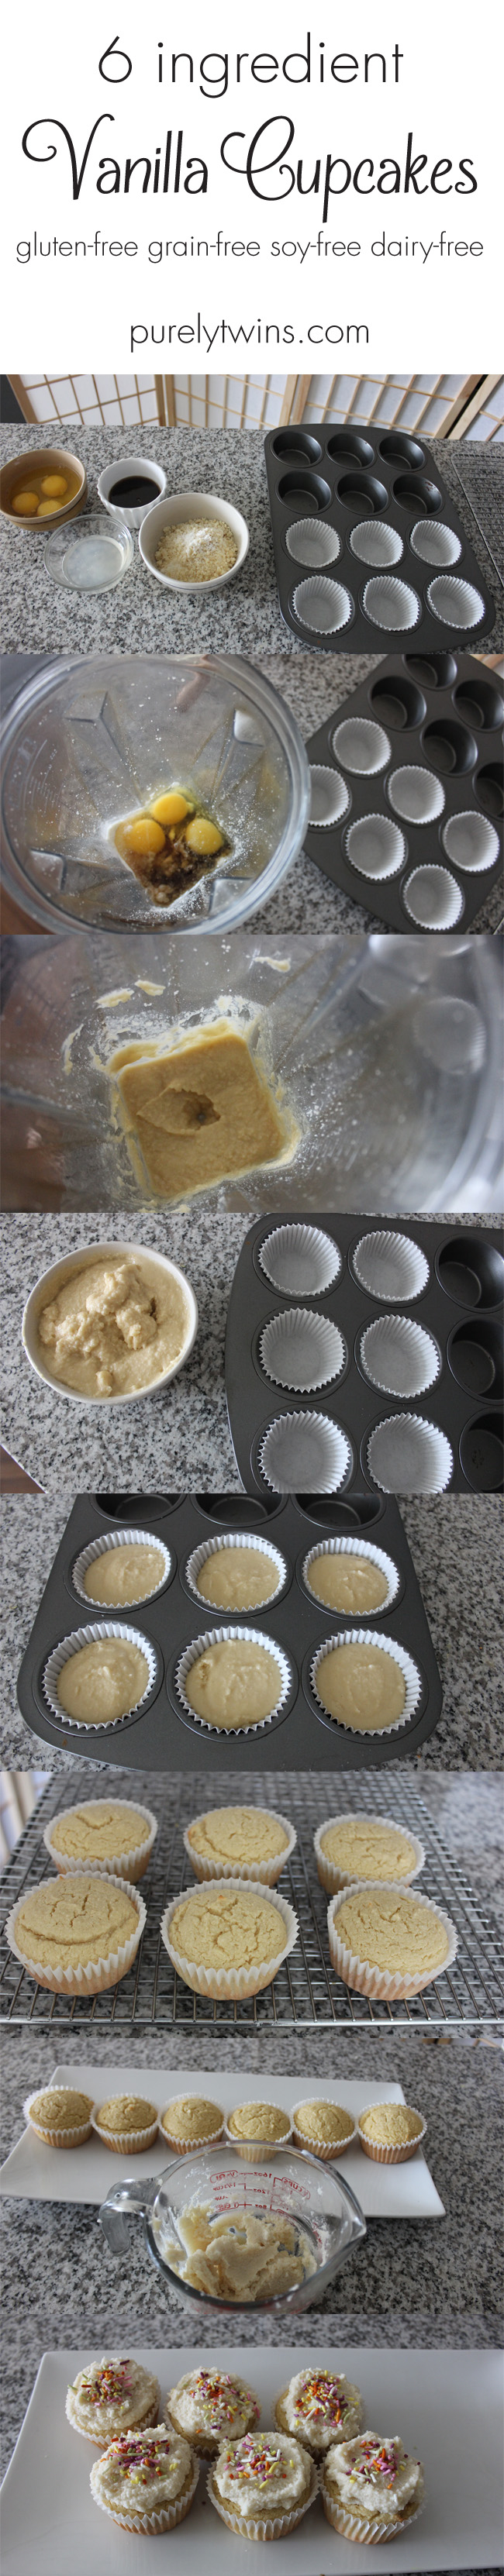 how to make 6 ingredient grainfree glutenfree vanilla cupcakes purelytwins